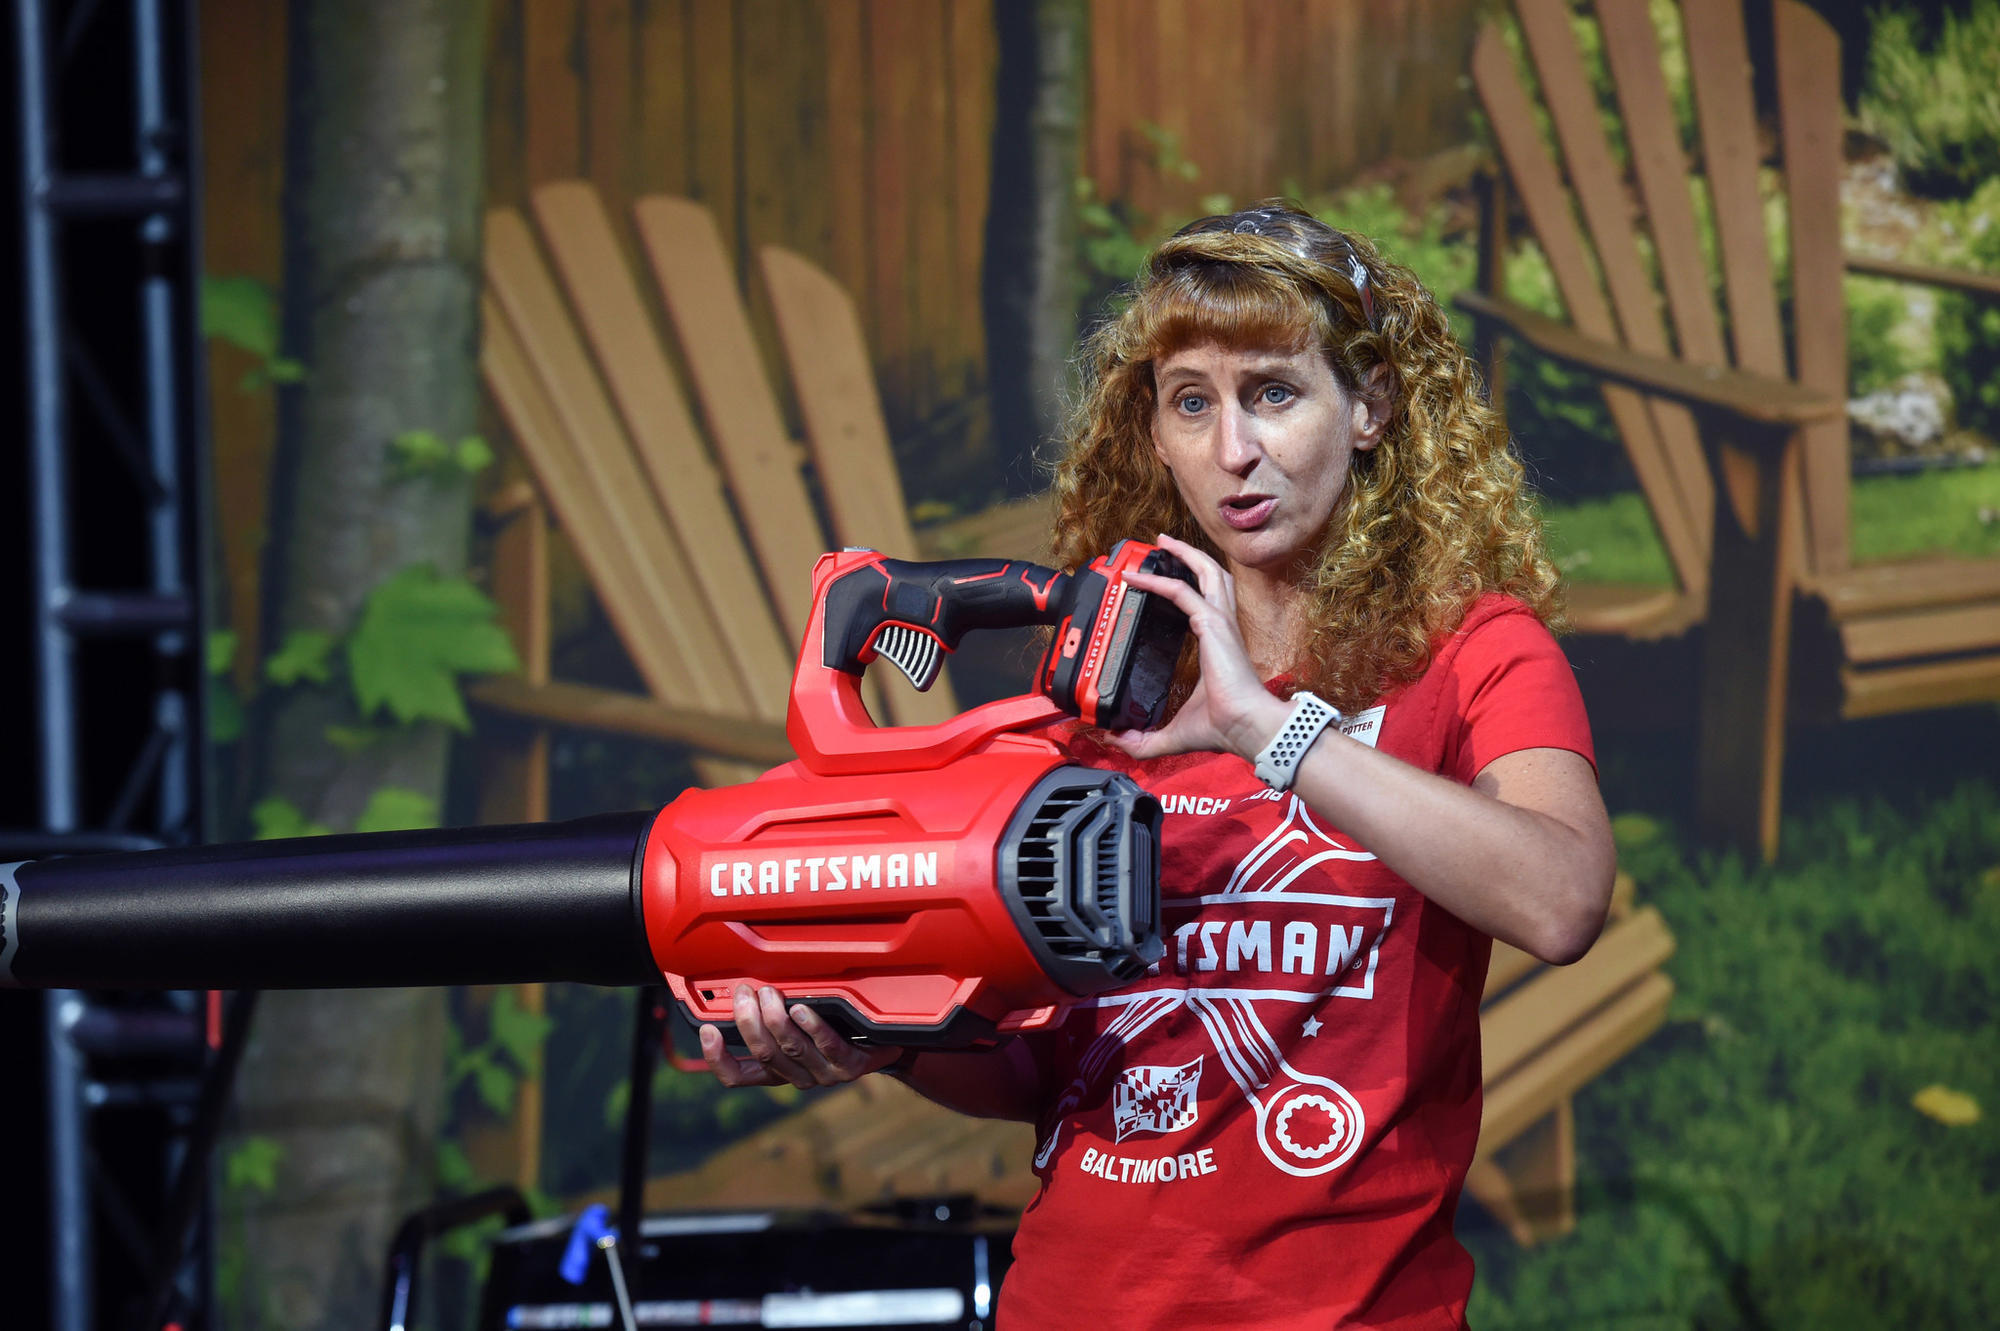 Who Makes Craftsman Power Tools For Lowes